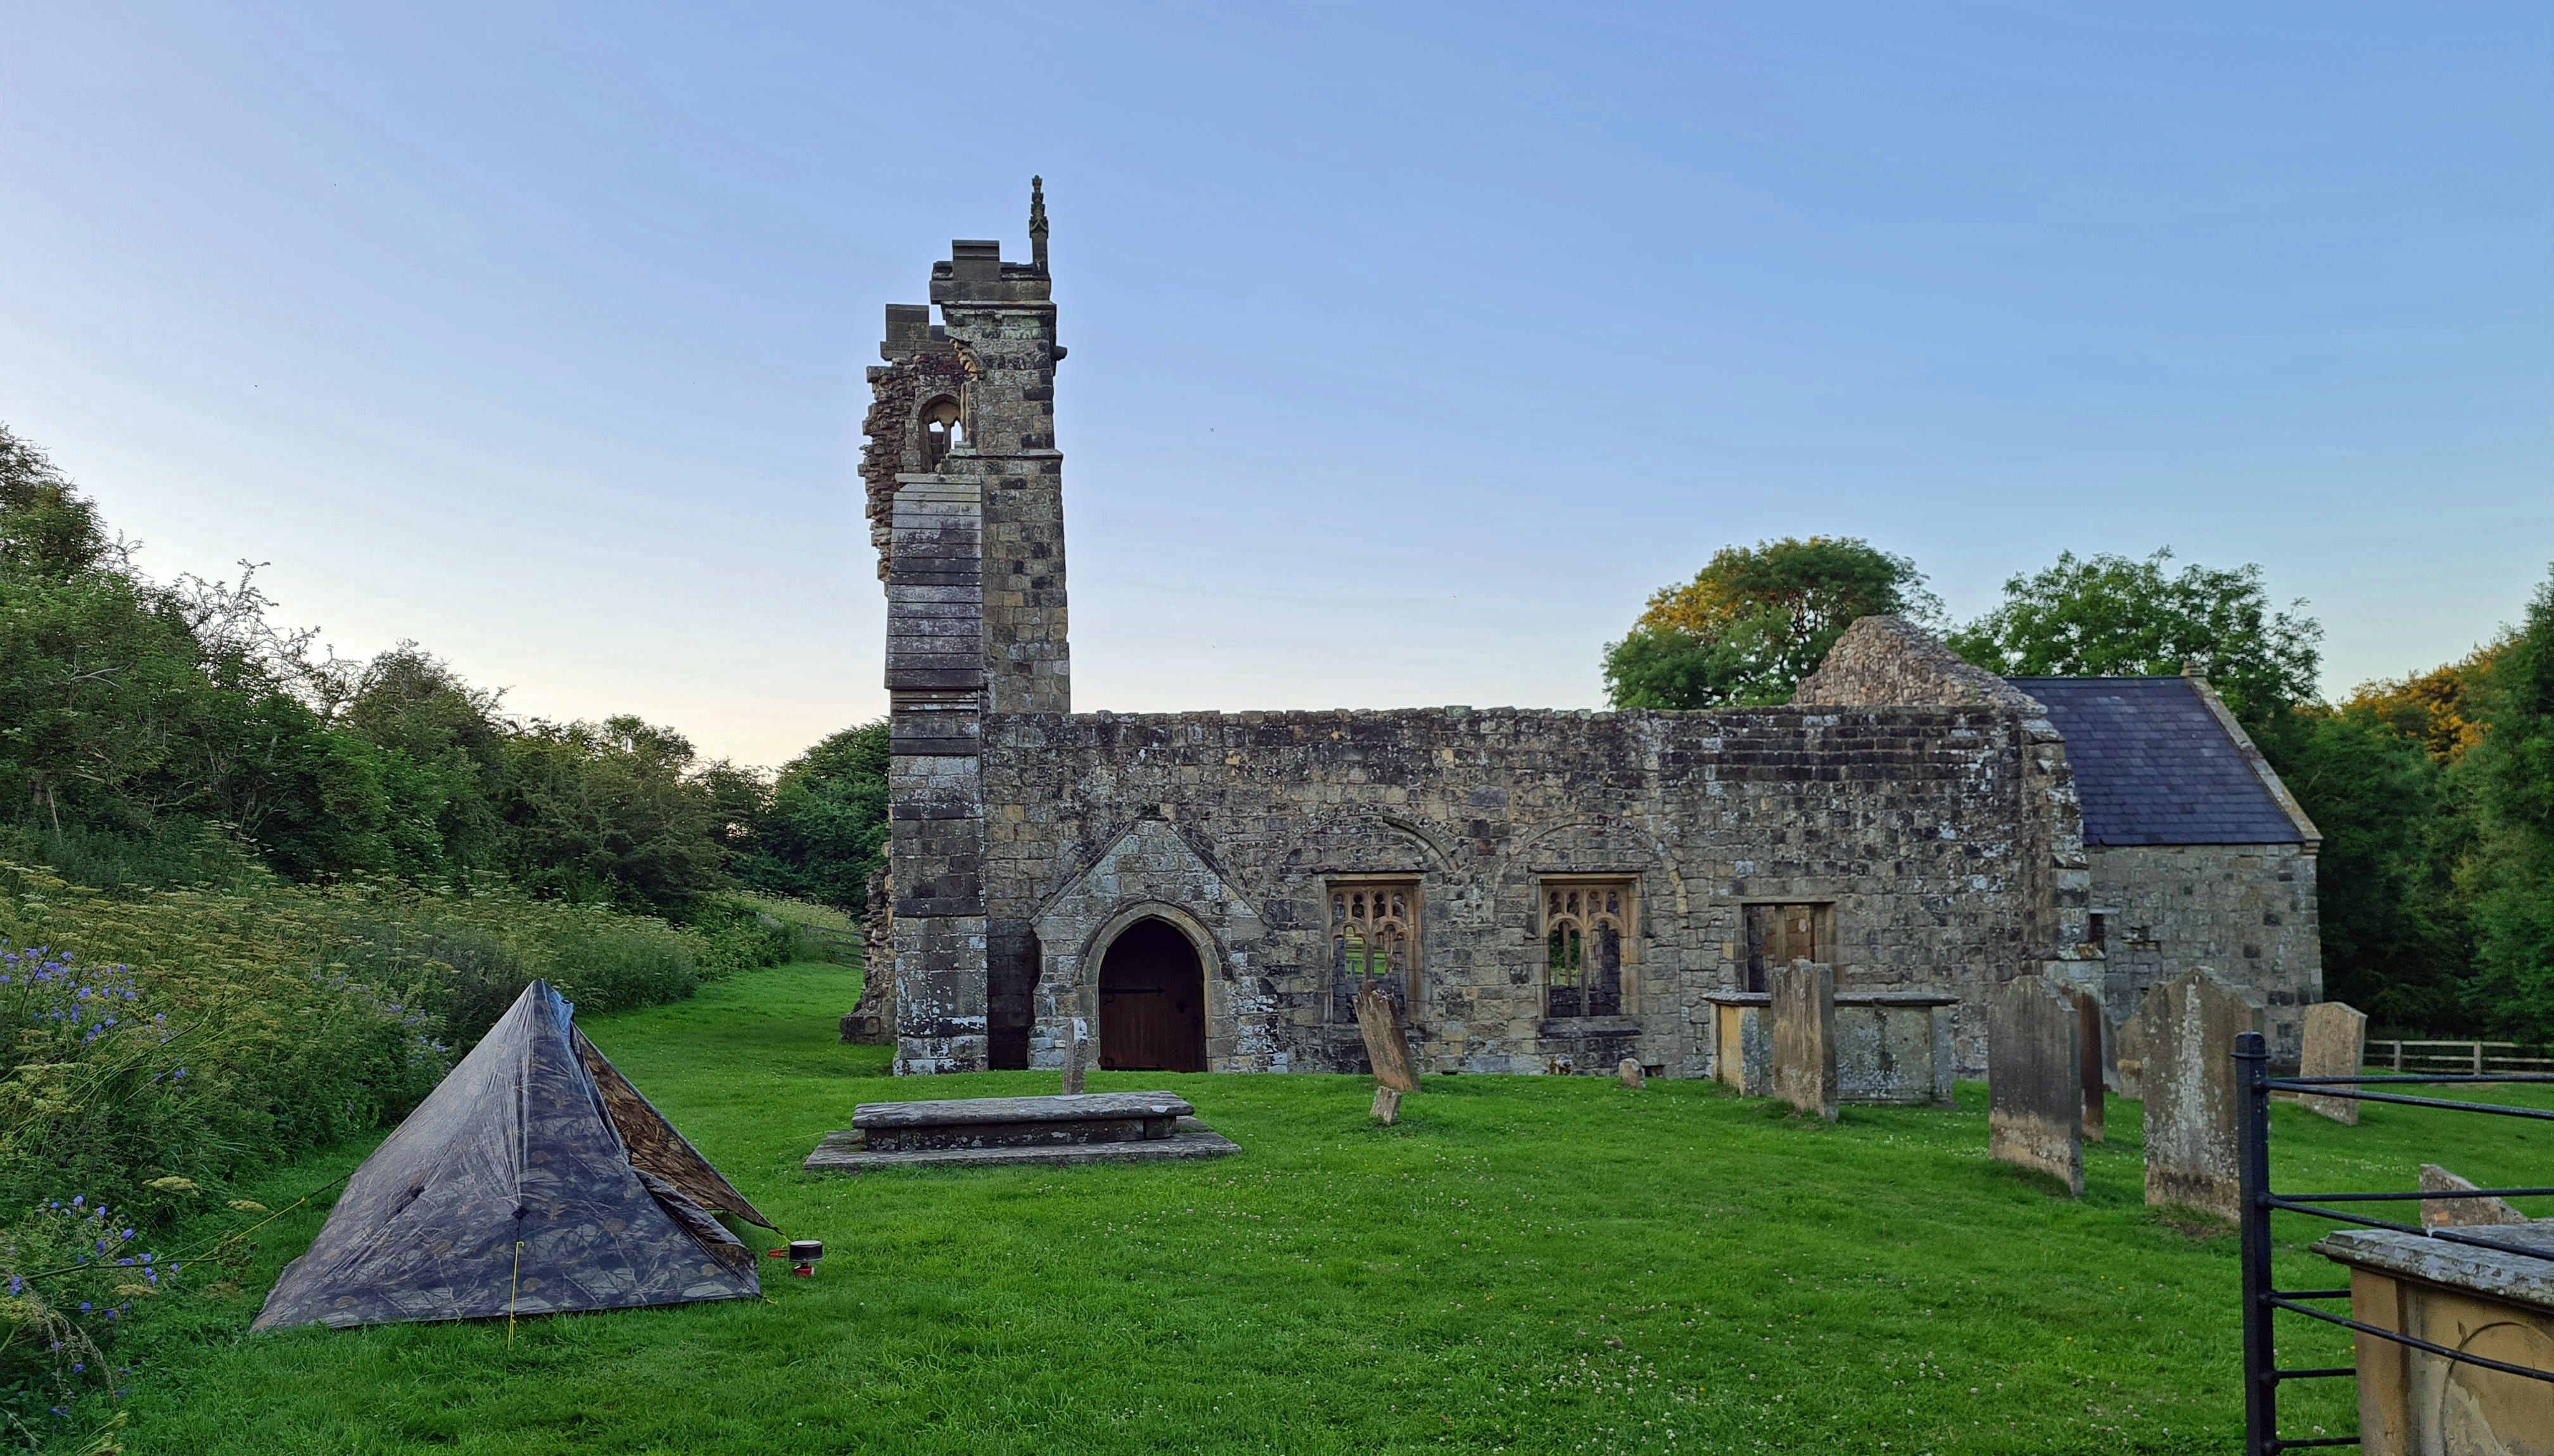 I arrived late enough at the medieval village of Wharram Percy that the day's visitors had all gone home. A good level pitch was found beside the ruined remains of the church, the best preserved element of this fascinating site. I found time in the evening's low light to join the Pipestrelles on the slopes above. Both to find a signal to message Mrs Three Points of the Compass, and to look around the outlines of the ancient dwellings once found there